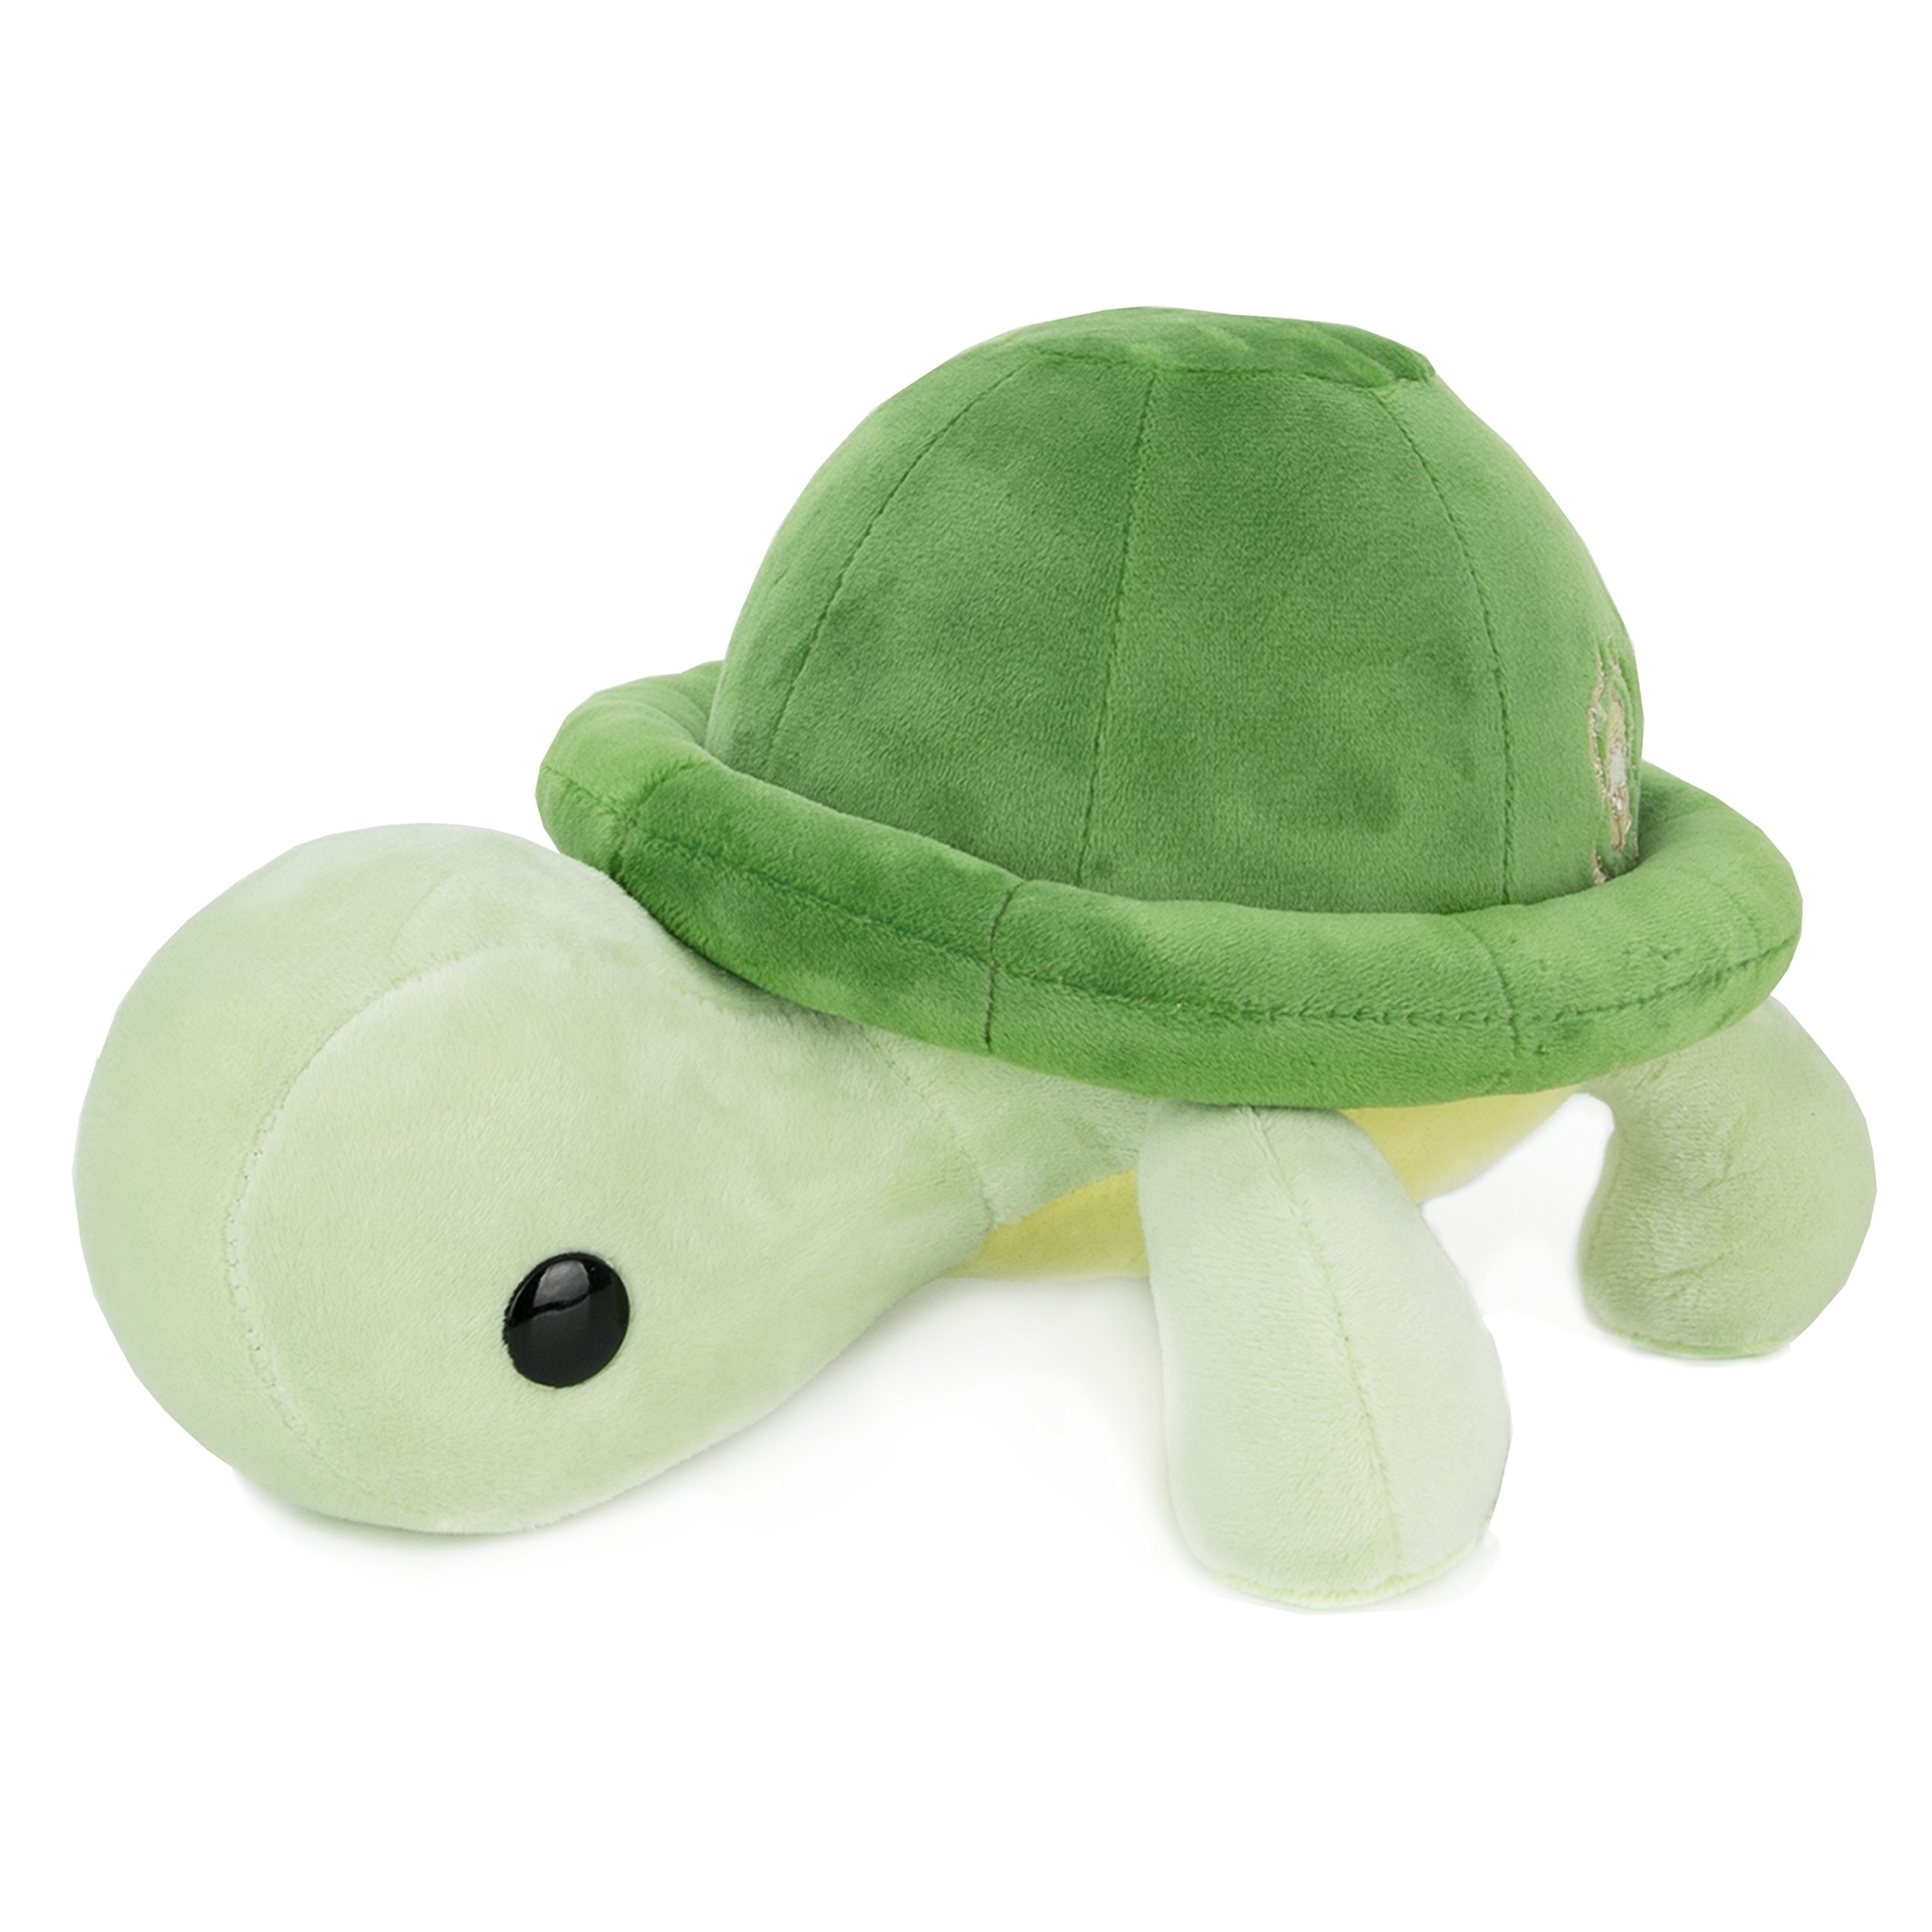 Bellzi Green Turtle Stuffed Animal Plush Toy Adorable Tortoise